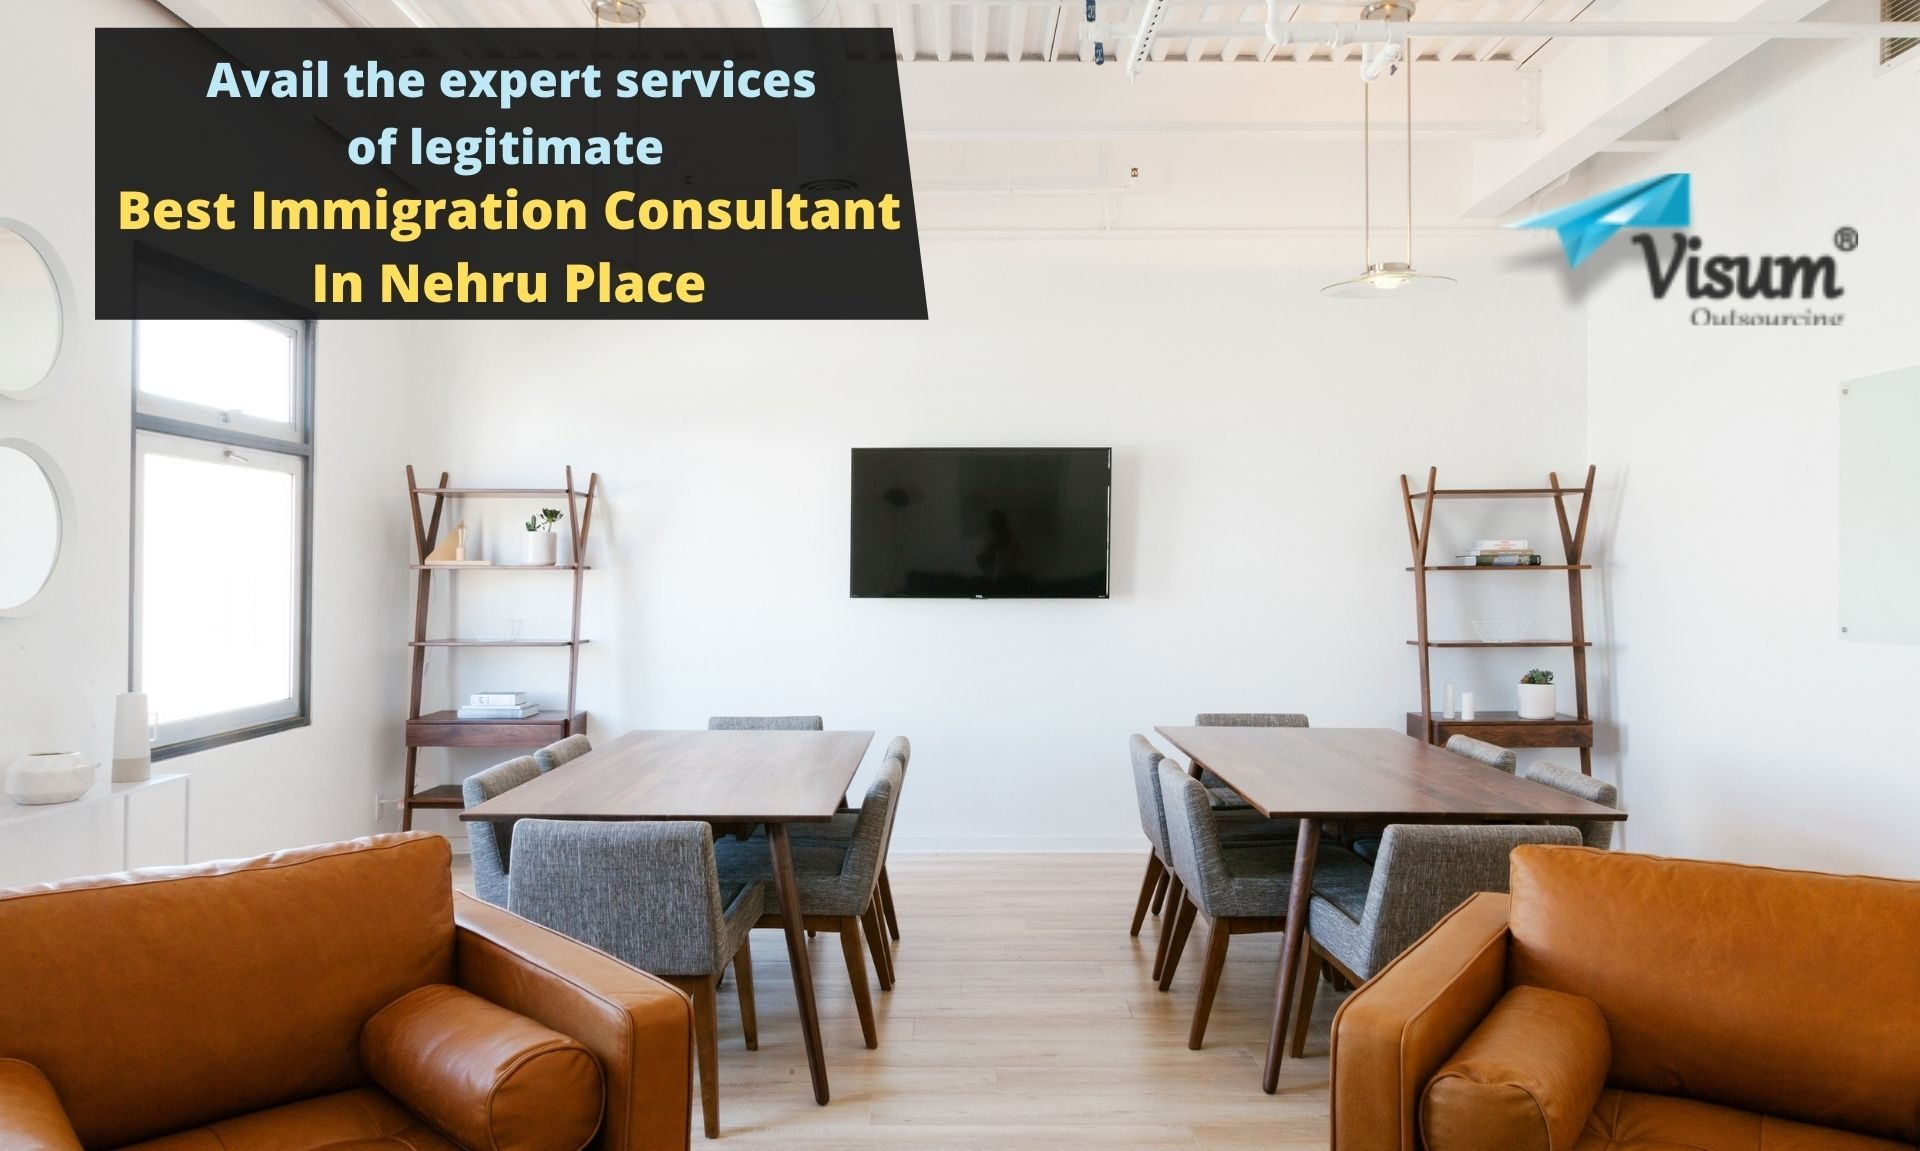 Best Immigration Consultant In Nehru Place